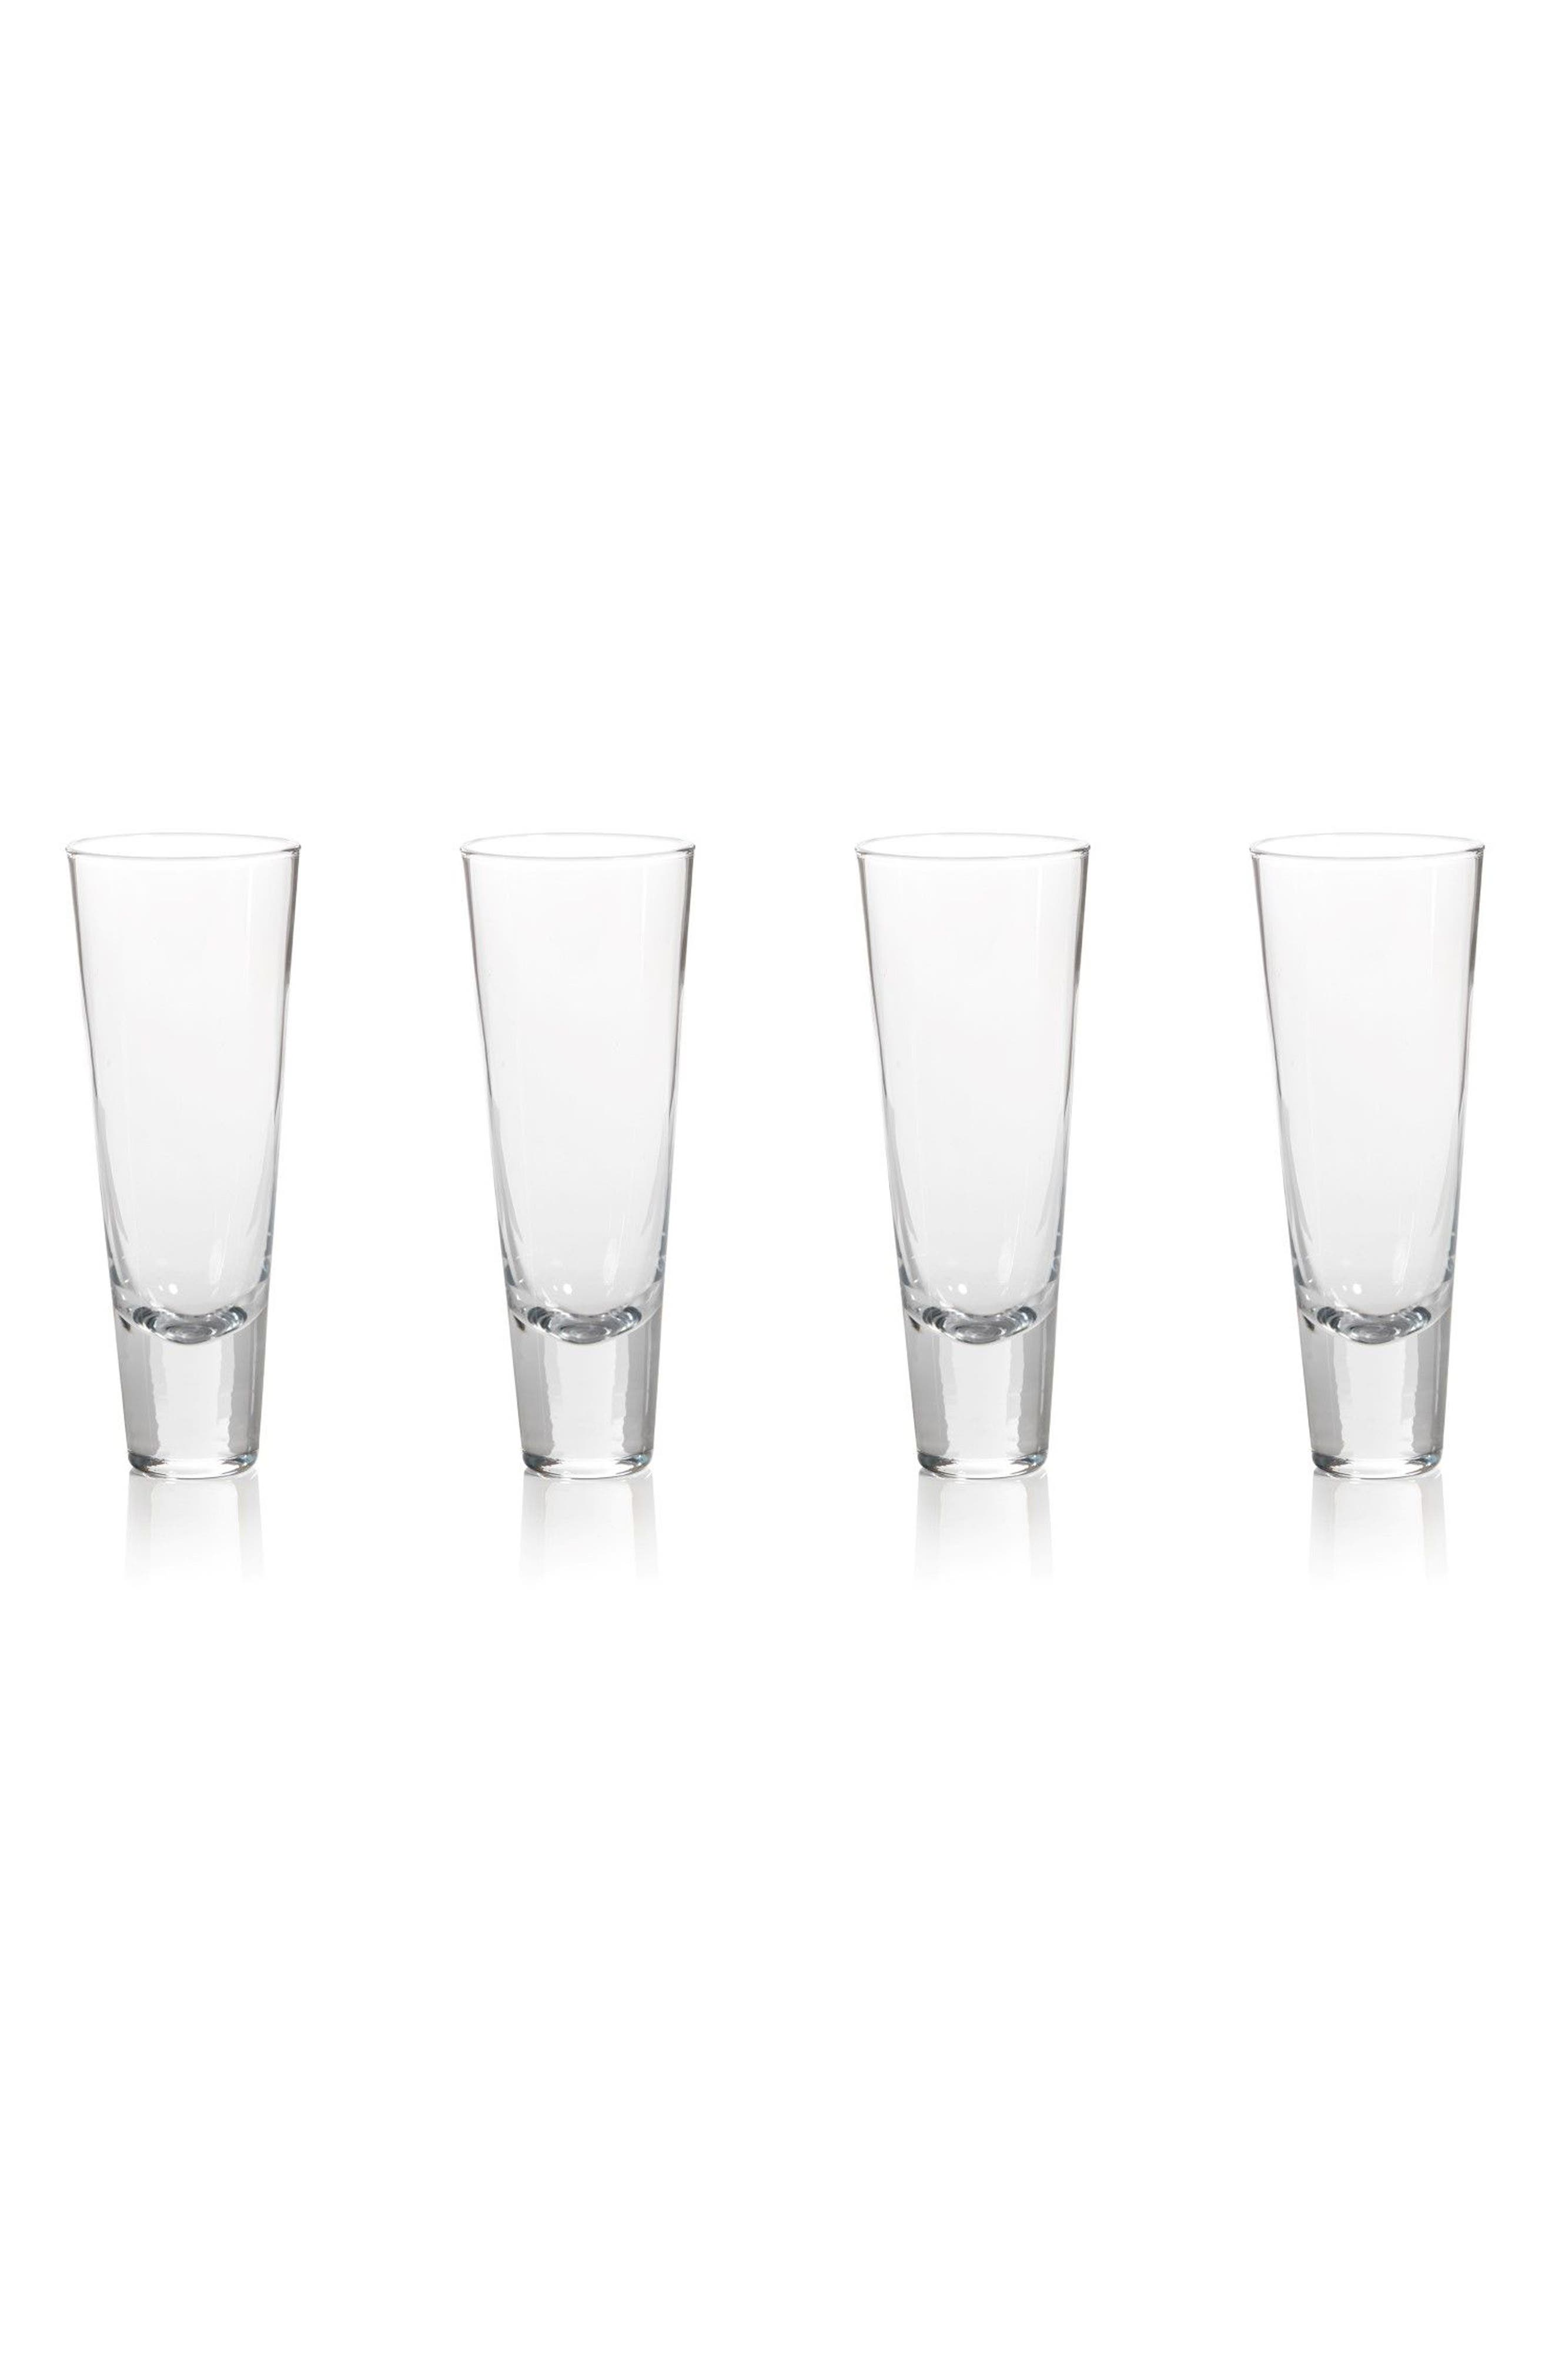 Anatole Set of 4 Tapered Glasses,                             Main thumbnail 1, color,                             Clear